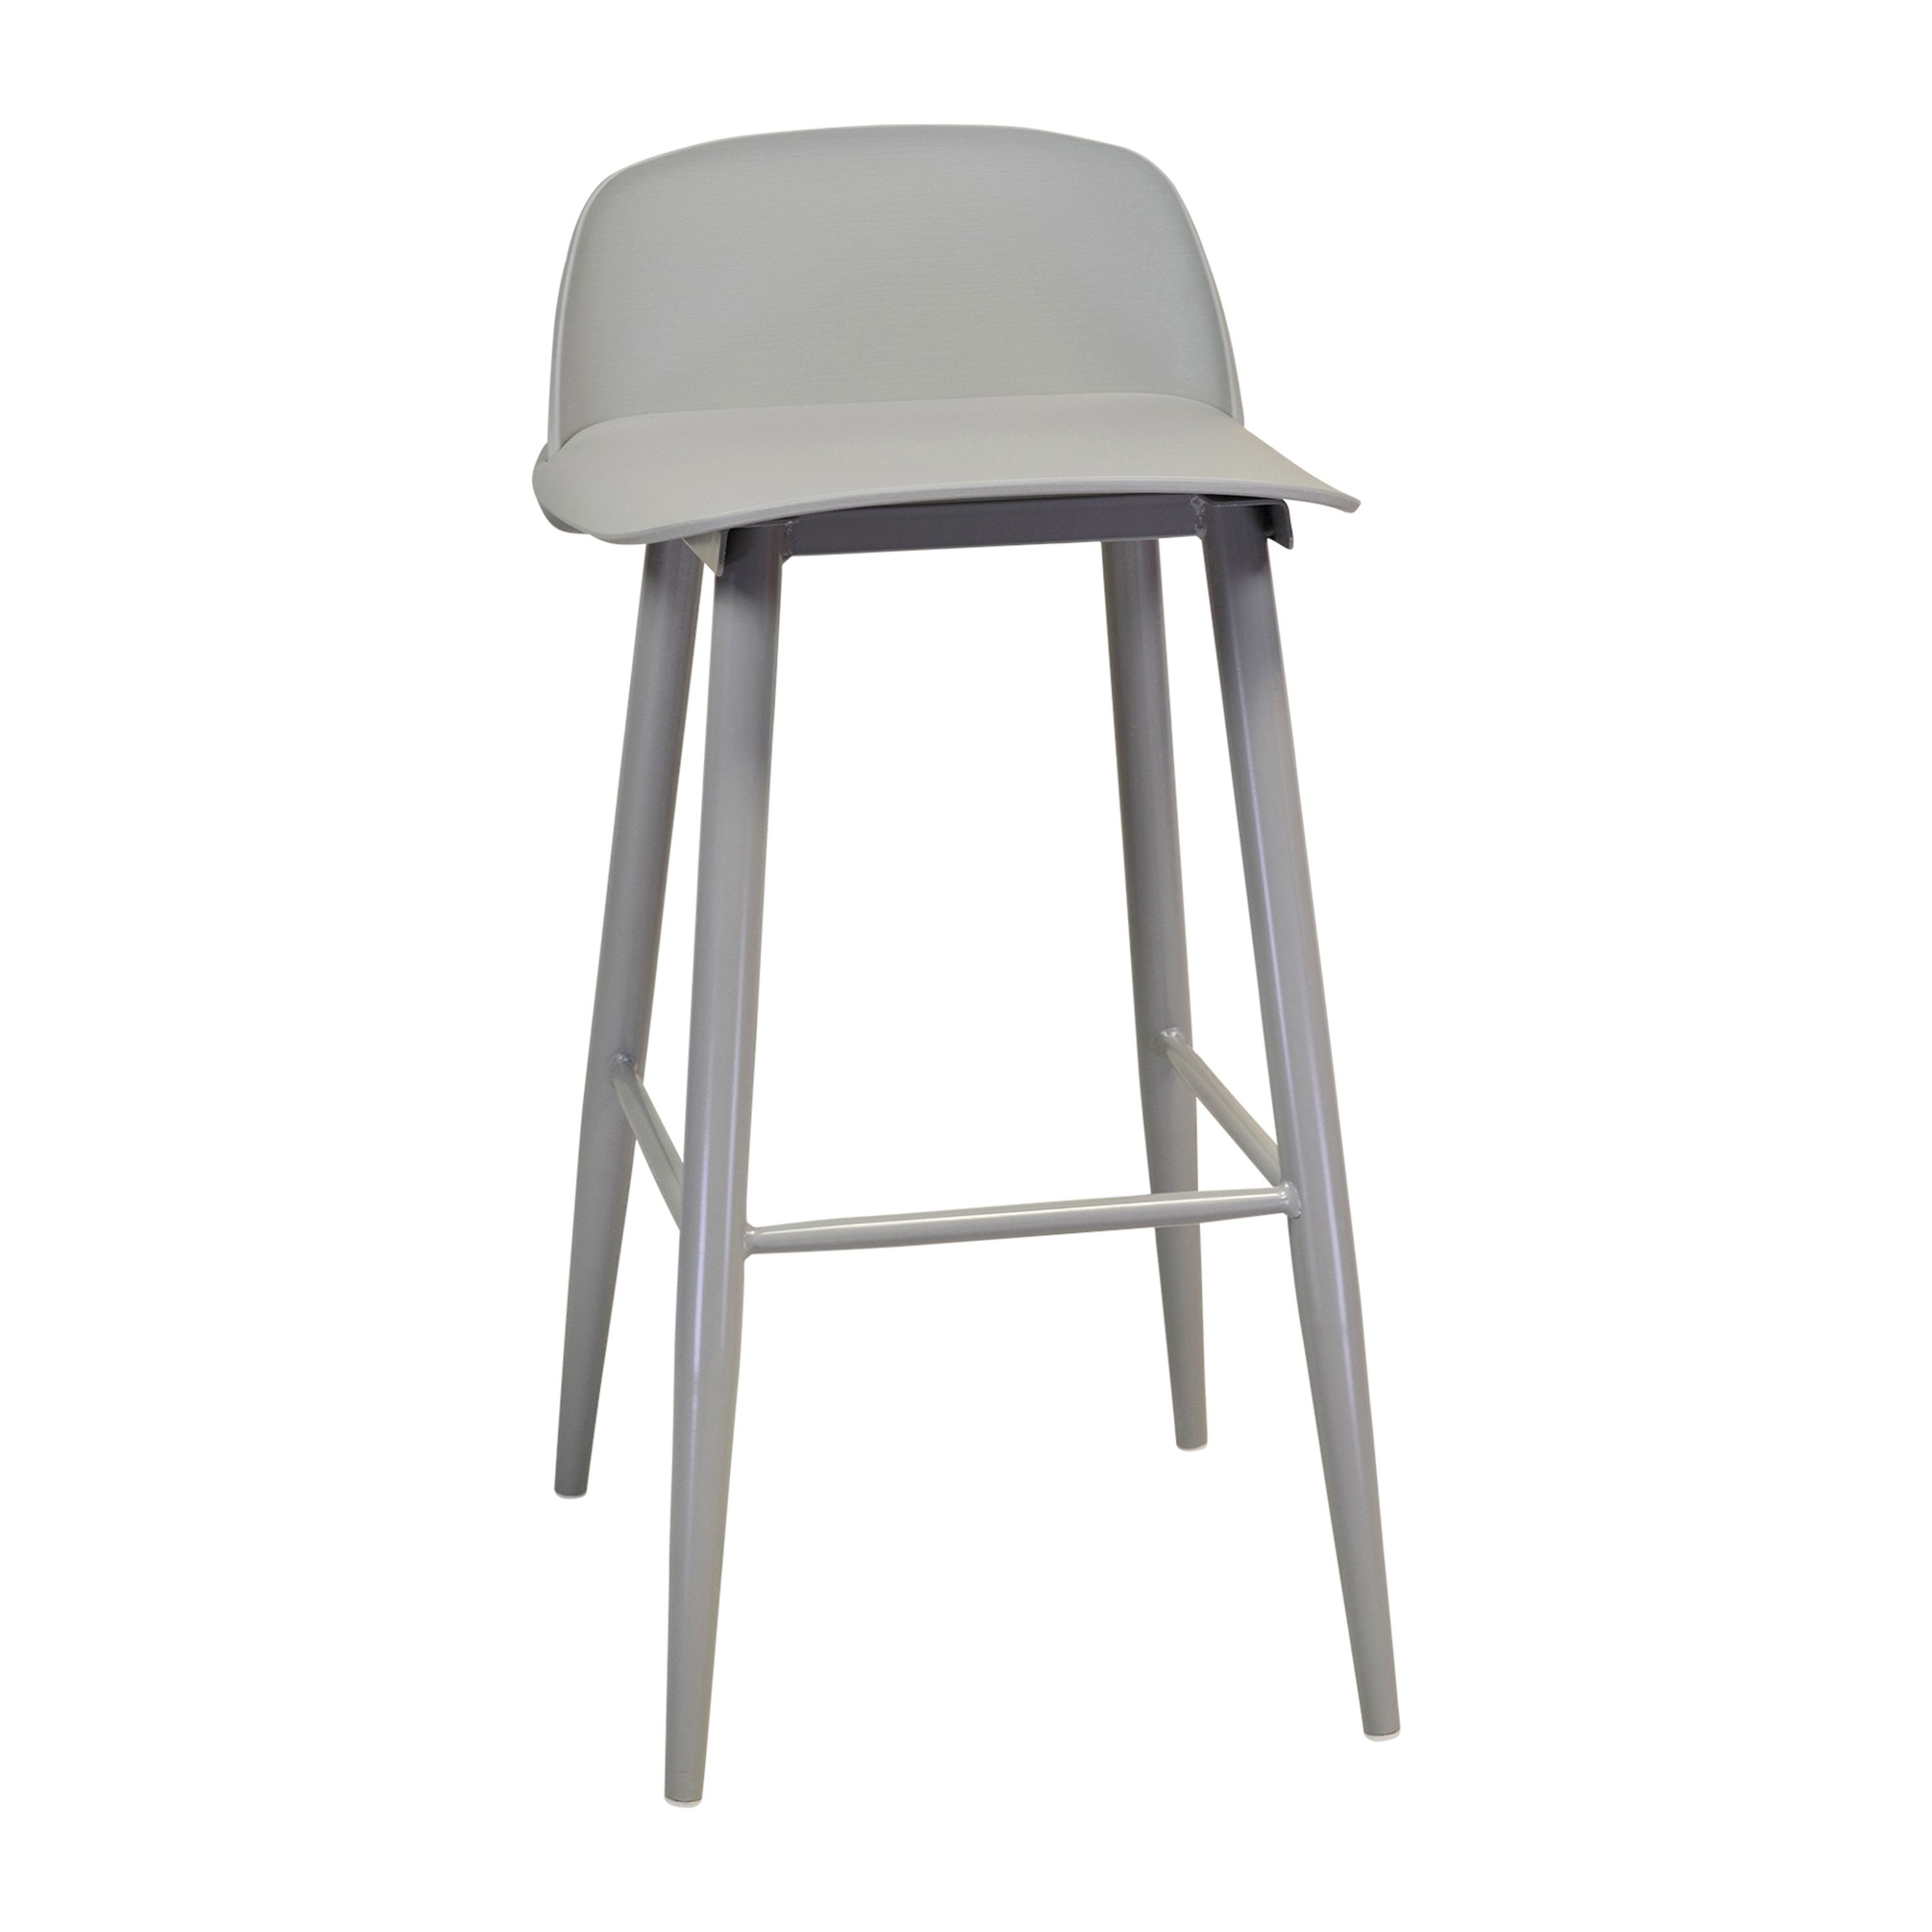 stools three wayfair quot bar reviews amp stool russett posts